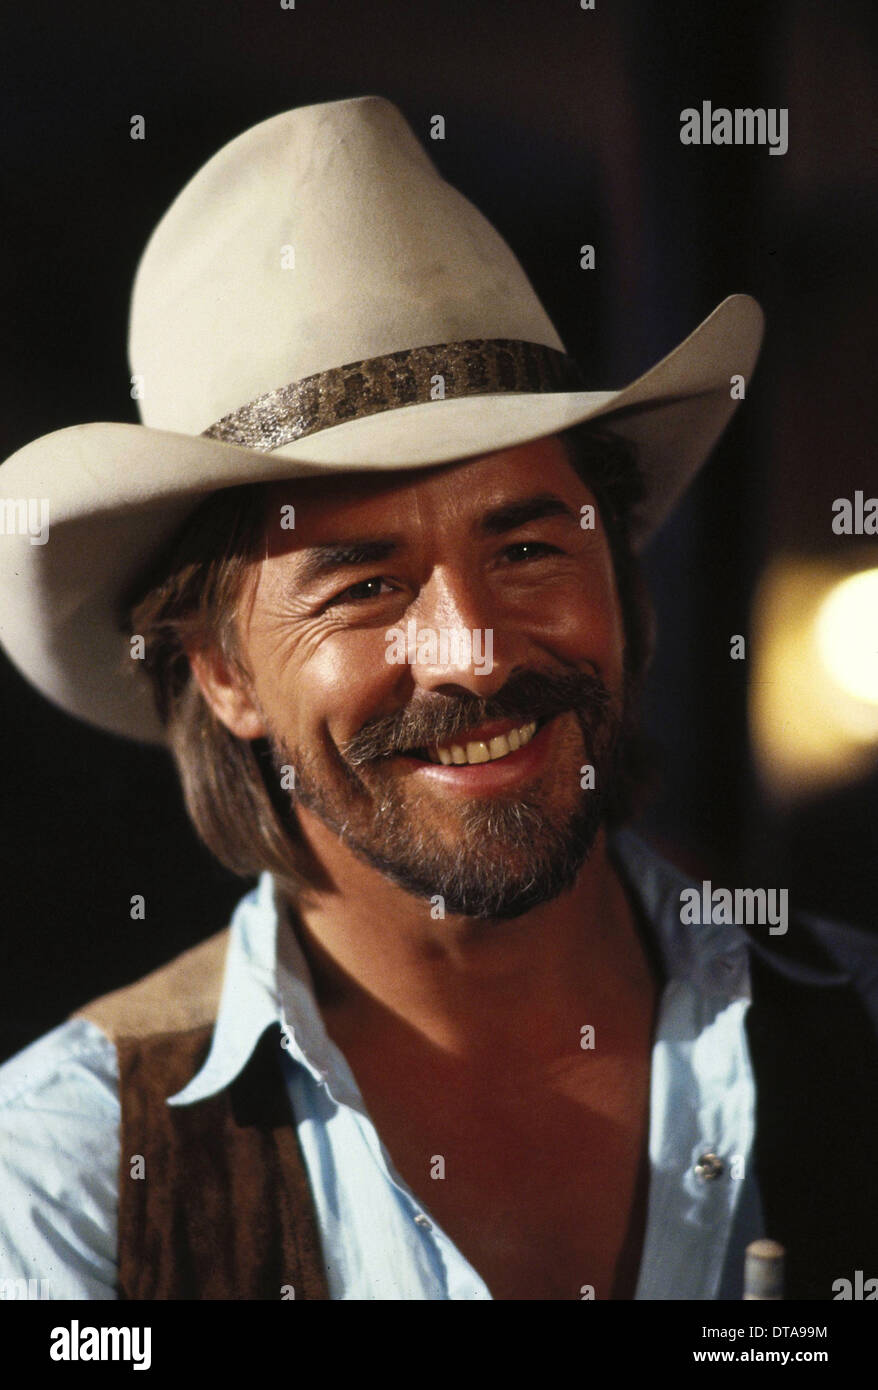 1751f6e01 Marlboro Man Stock Photos & Marlboro Man Stock Images - Alamy